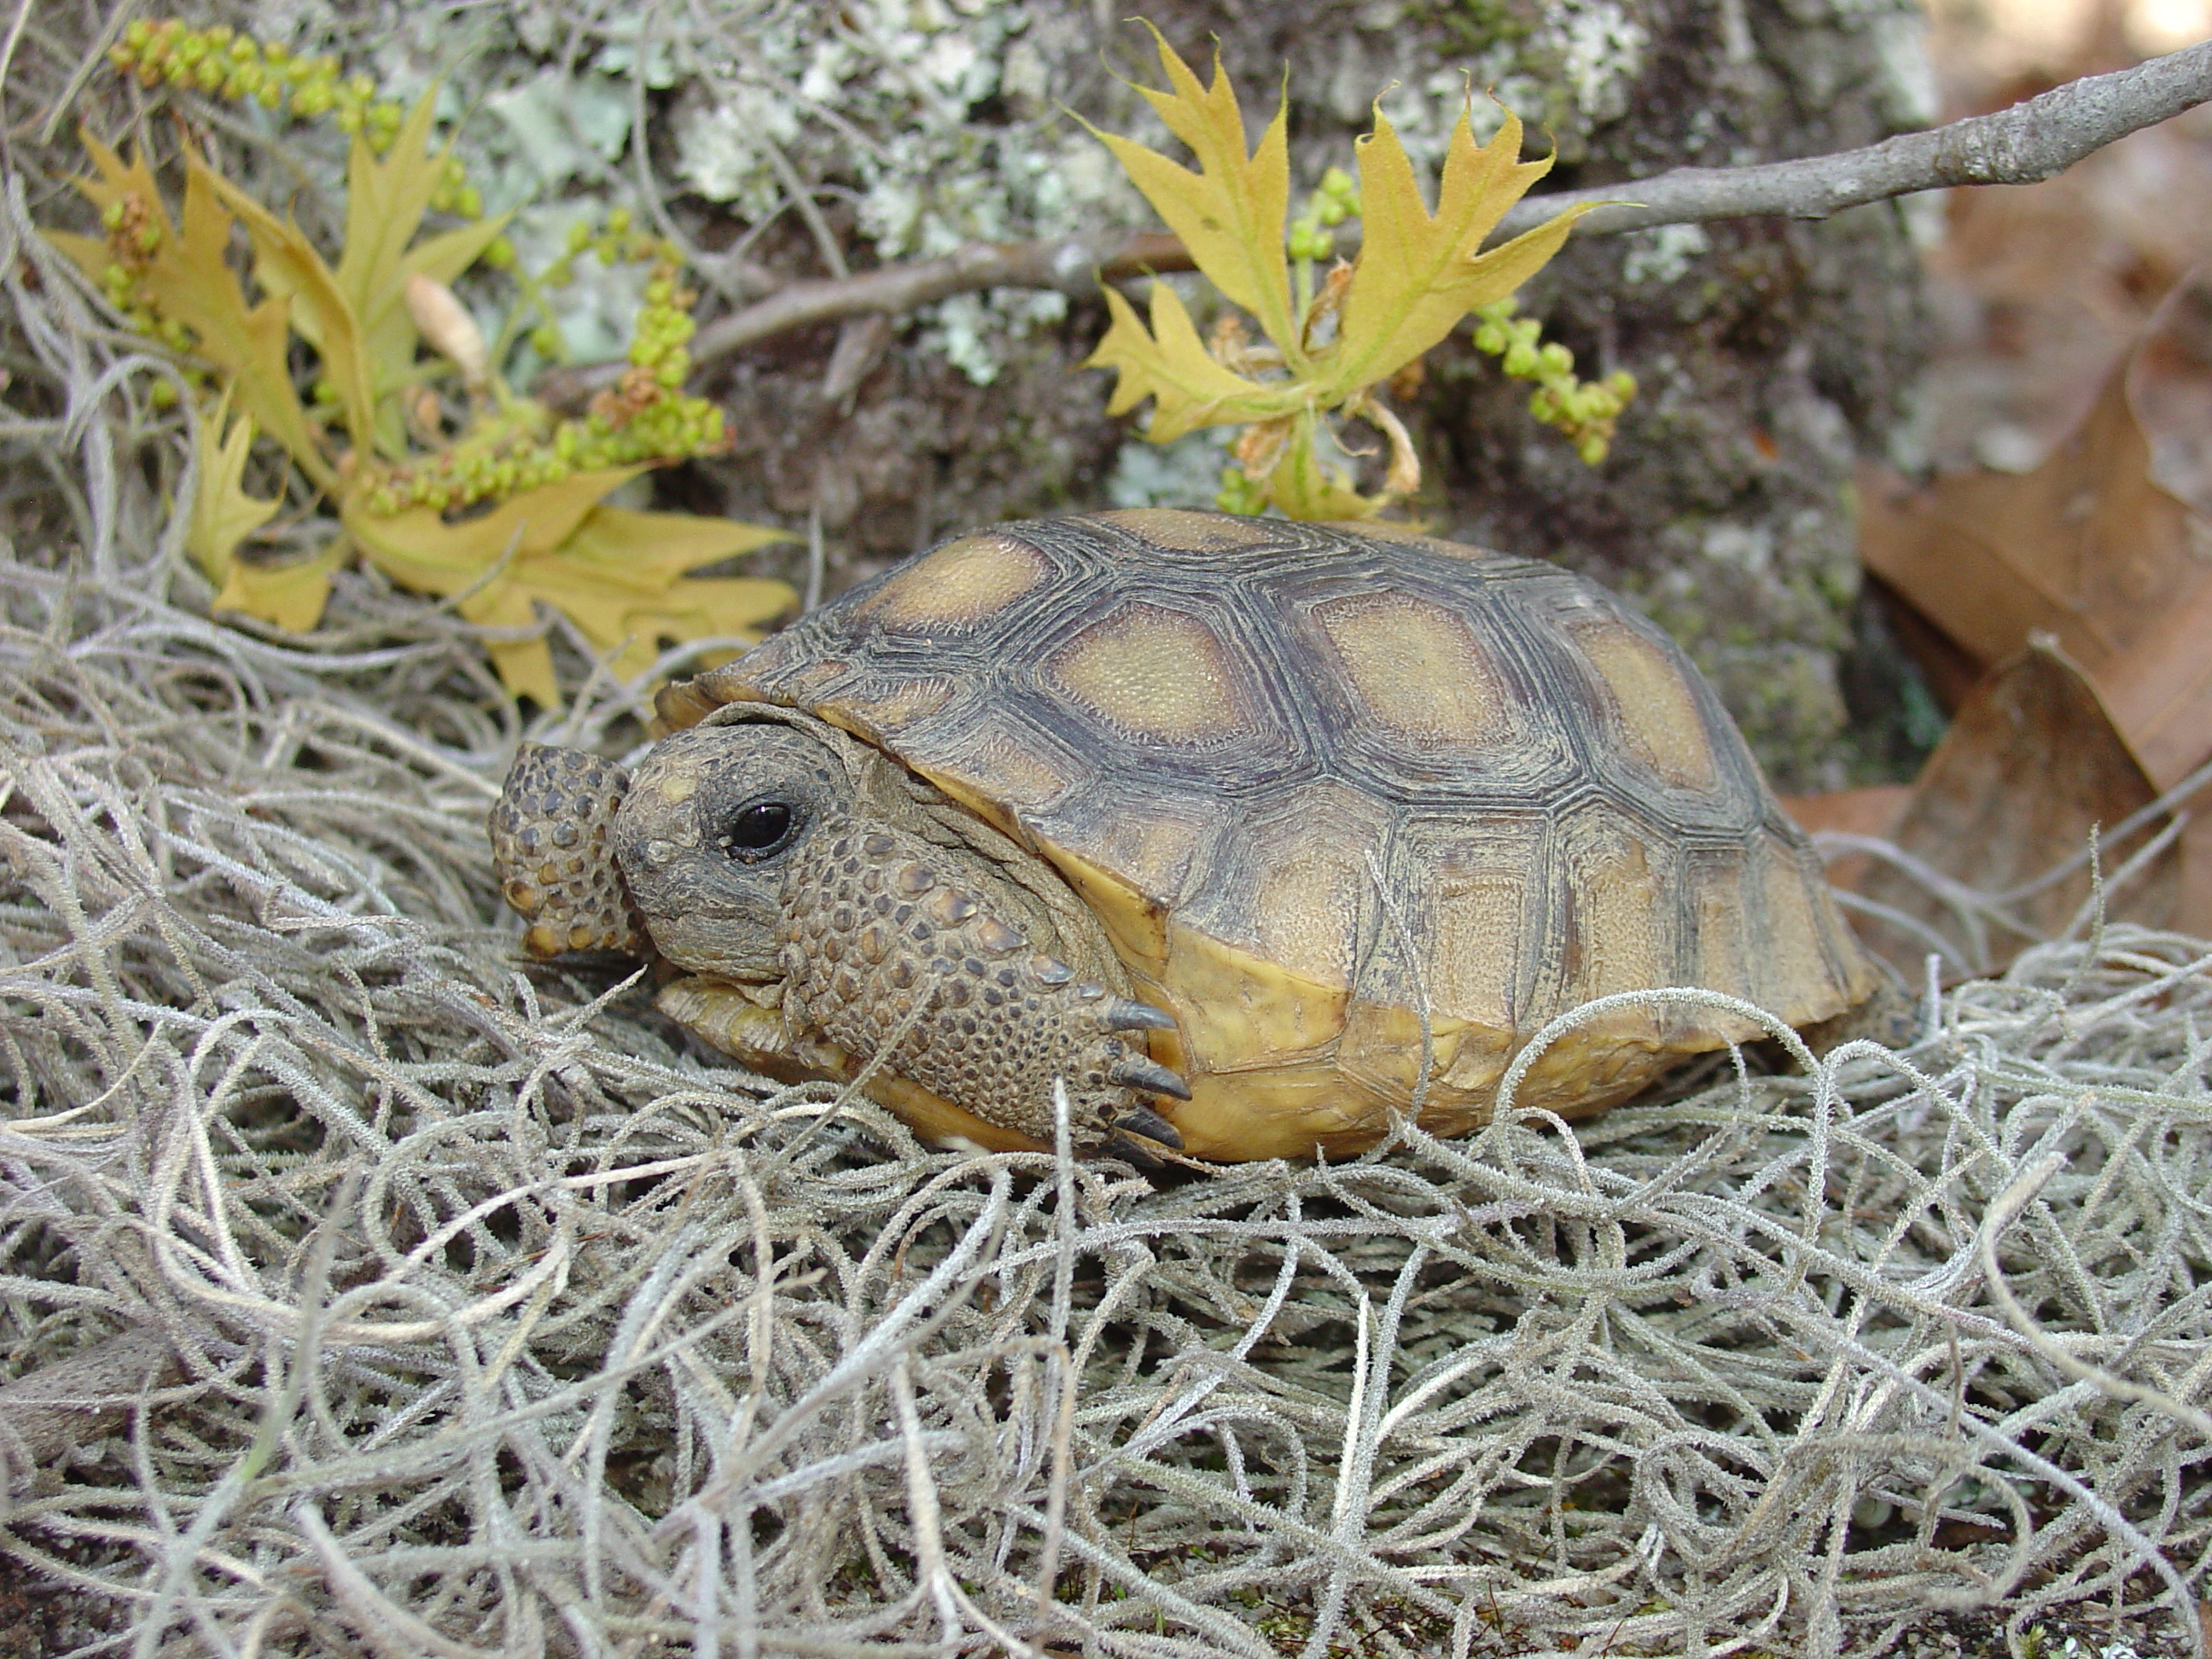 A photo of a gopher tortoise resting on a nest.